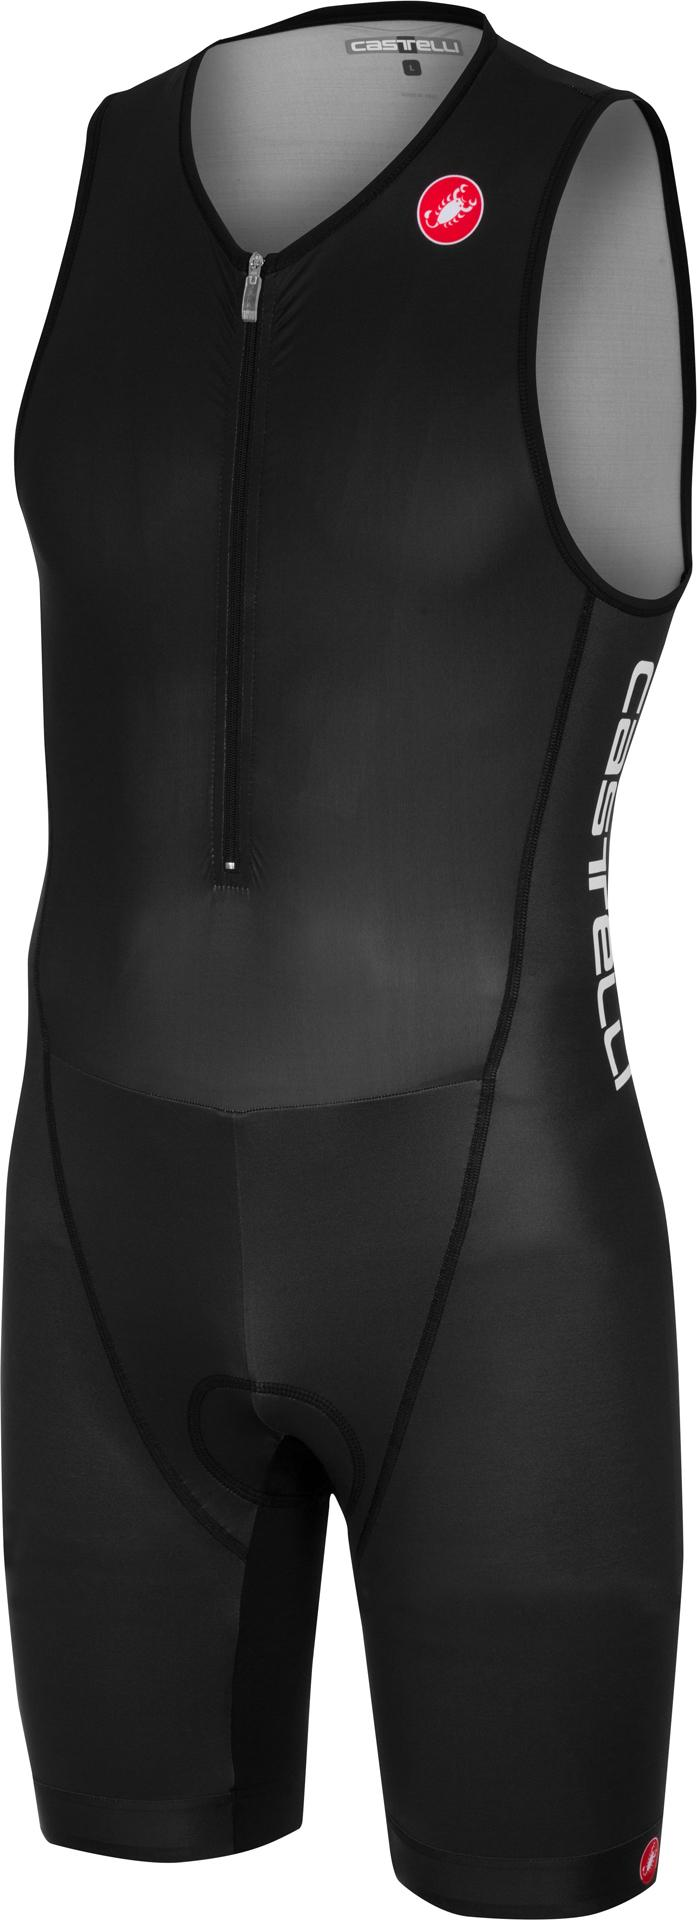 Castelli Triathlon pak Heren Zwart  - CA Core Tri Suit-Black